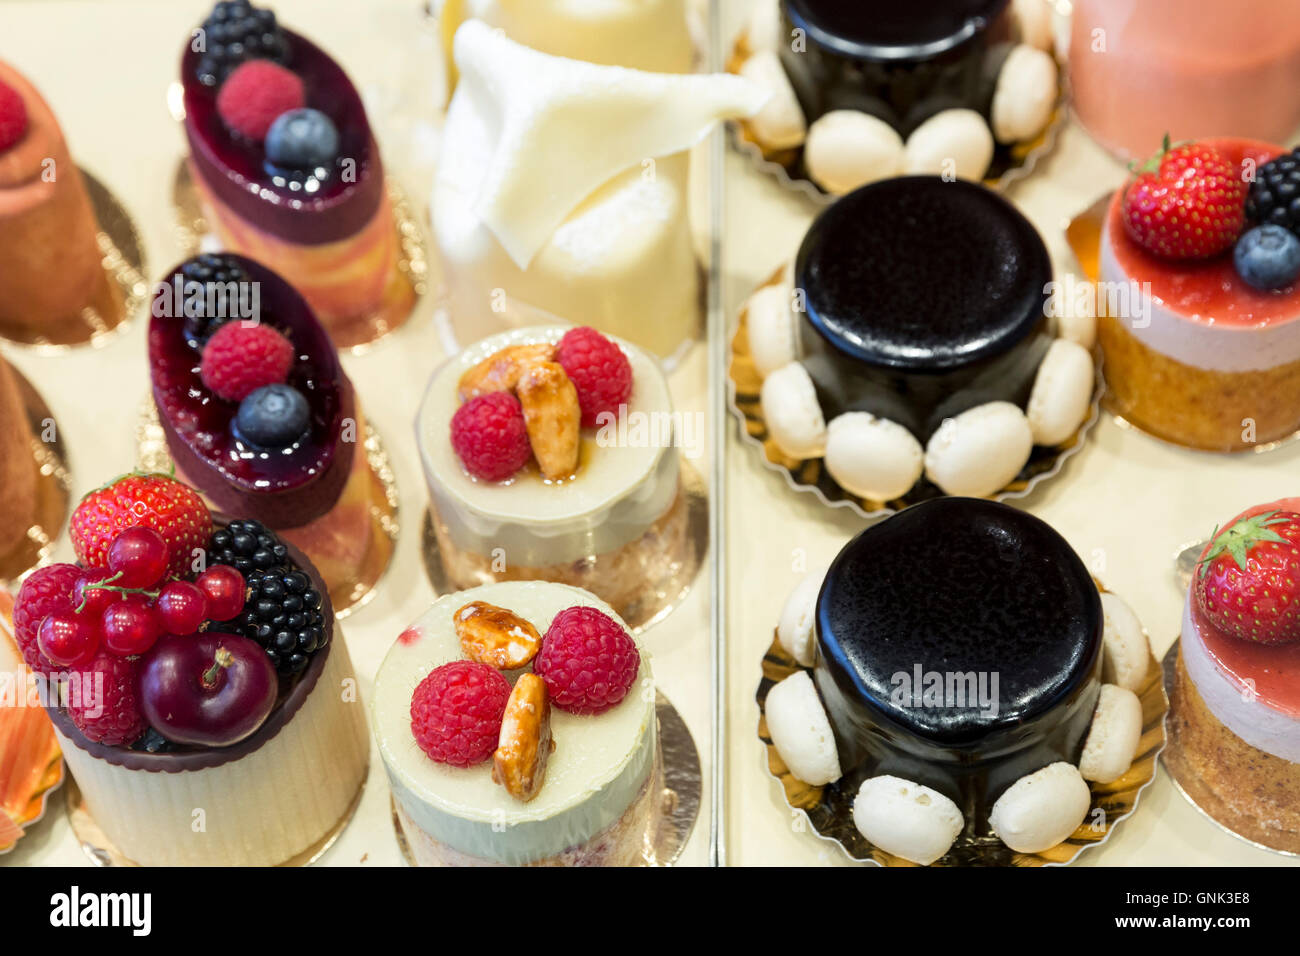 Luxury fruit cakes at Pompadour in Huidenstraat in the Nine Streets shopping district, Amsterdam - Stock Image